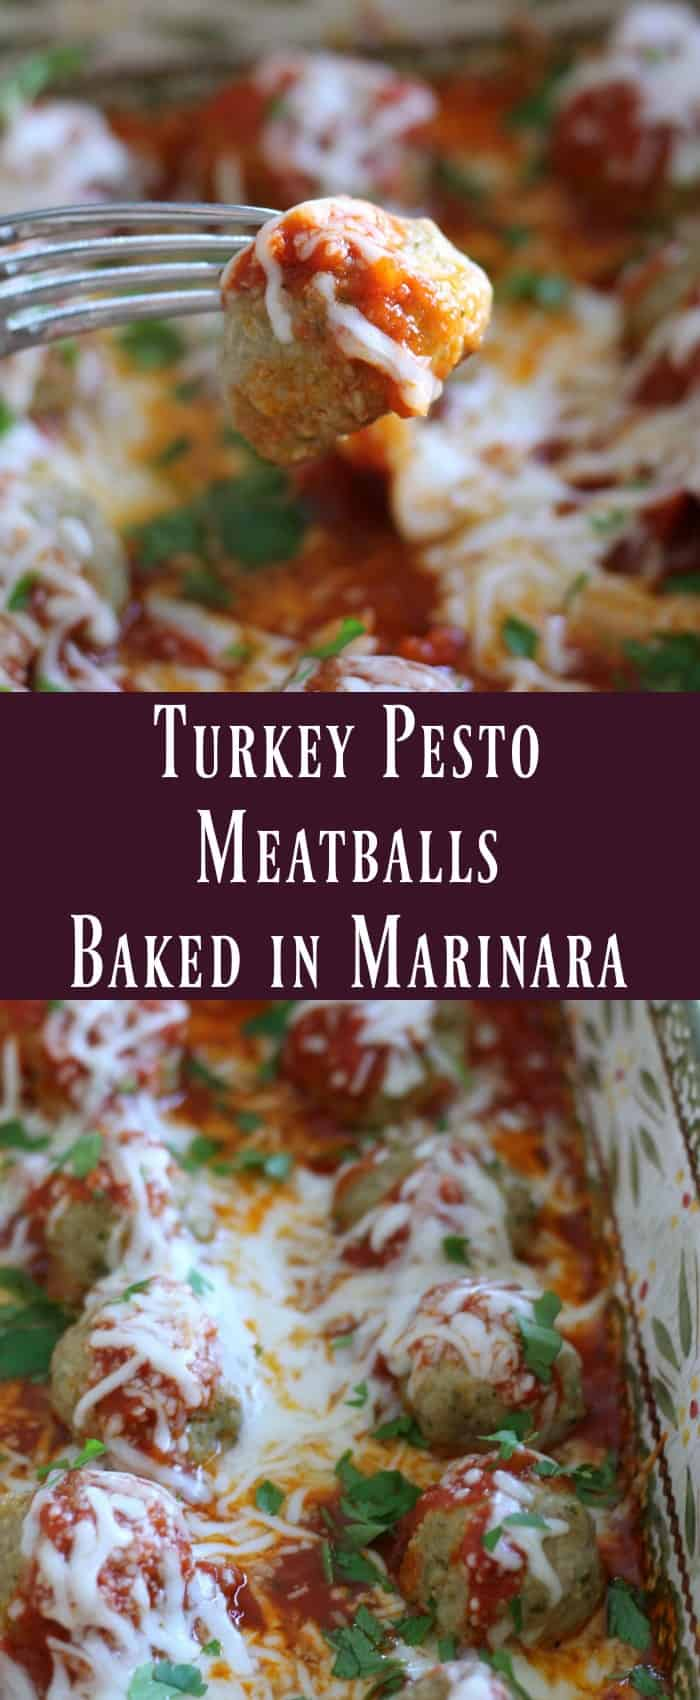 Turkey Pesto Meatballs Baked In Marinara